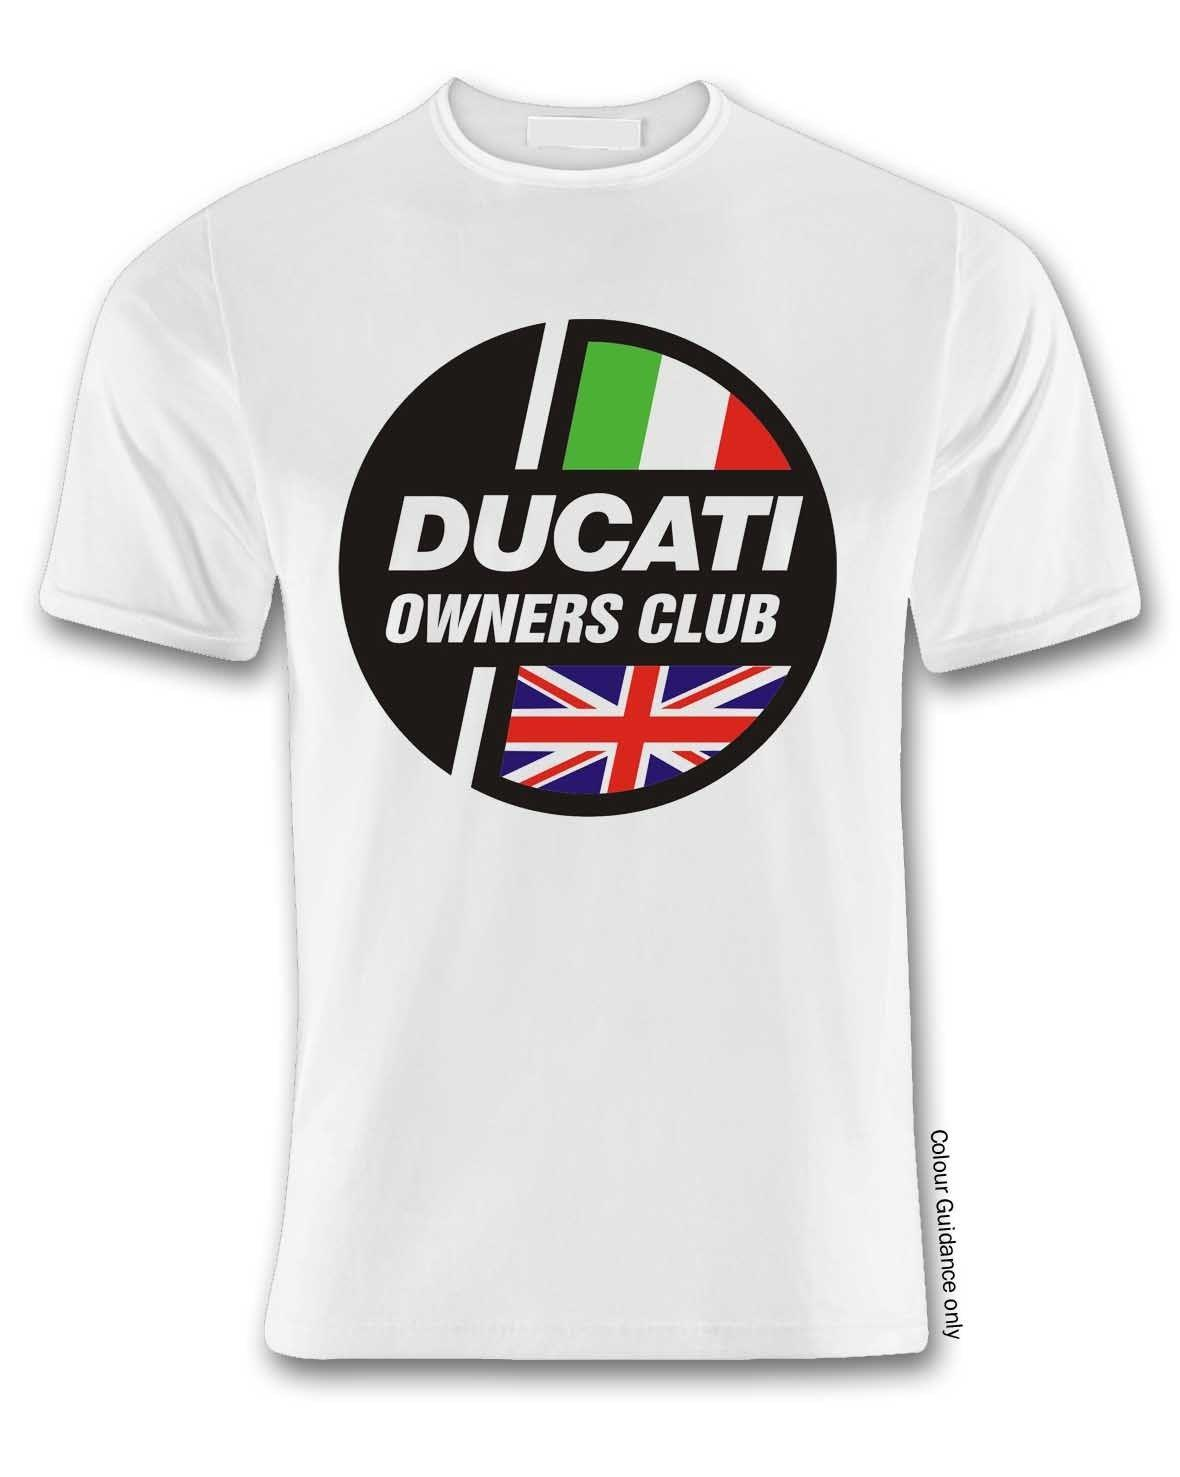 2a221f0d Ducatti Owners Club White T Shirt Tees Men Tops Tees Casual Male ...